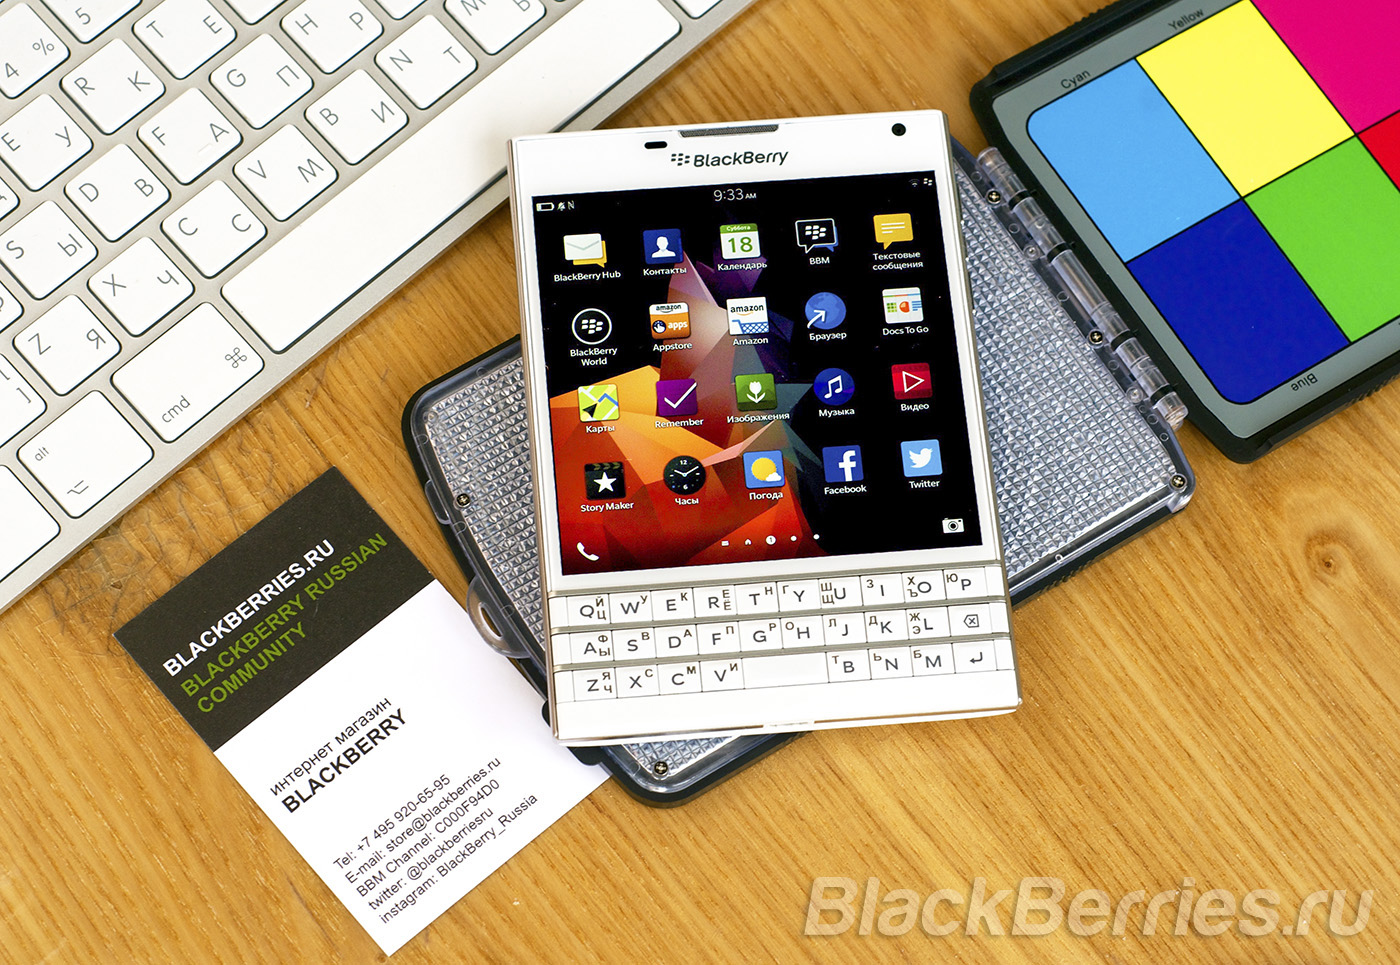 BlackBerry-Passport-Apps-18-07-03